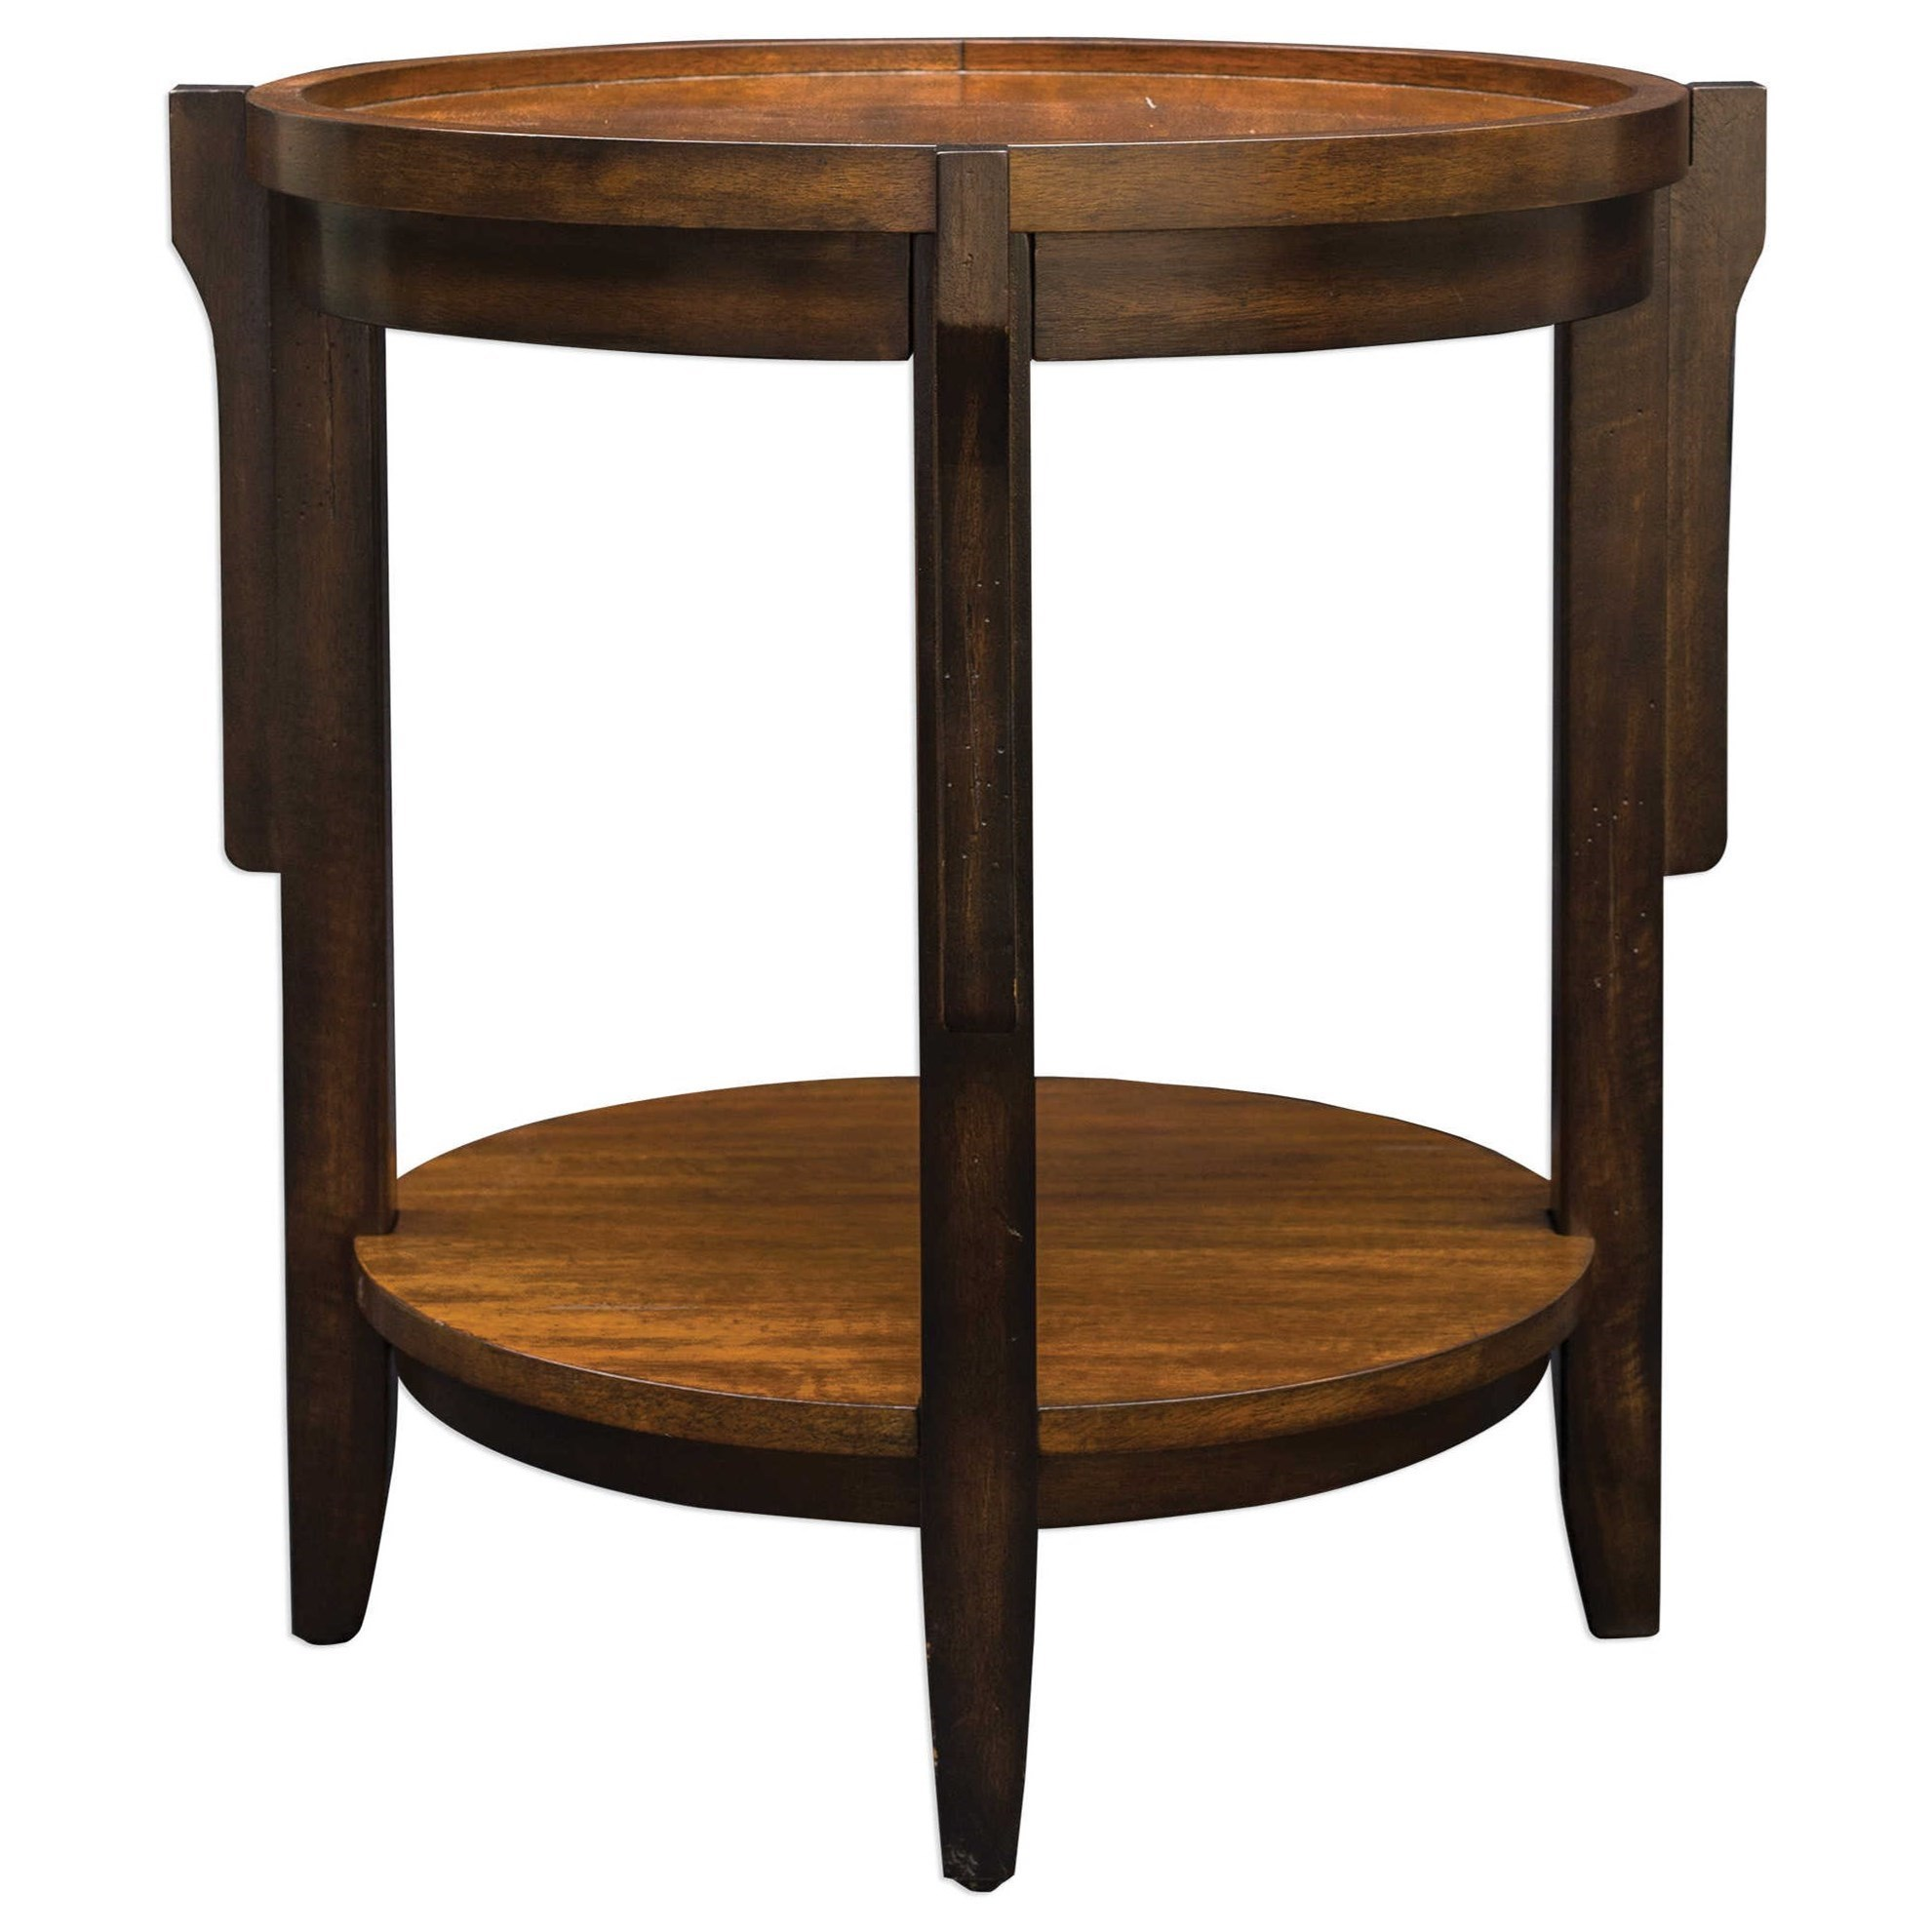 uttermost accent furniture sigmon round wooden end table bronze cream colored tables oval nesting iron glass side leons winnipeg storage ideas black pedestal white living room